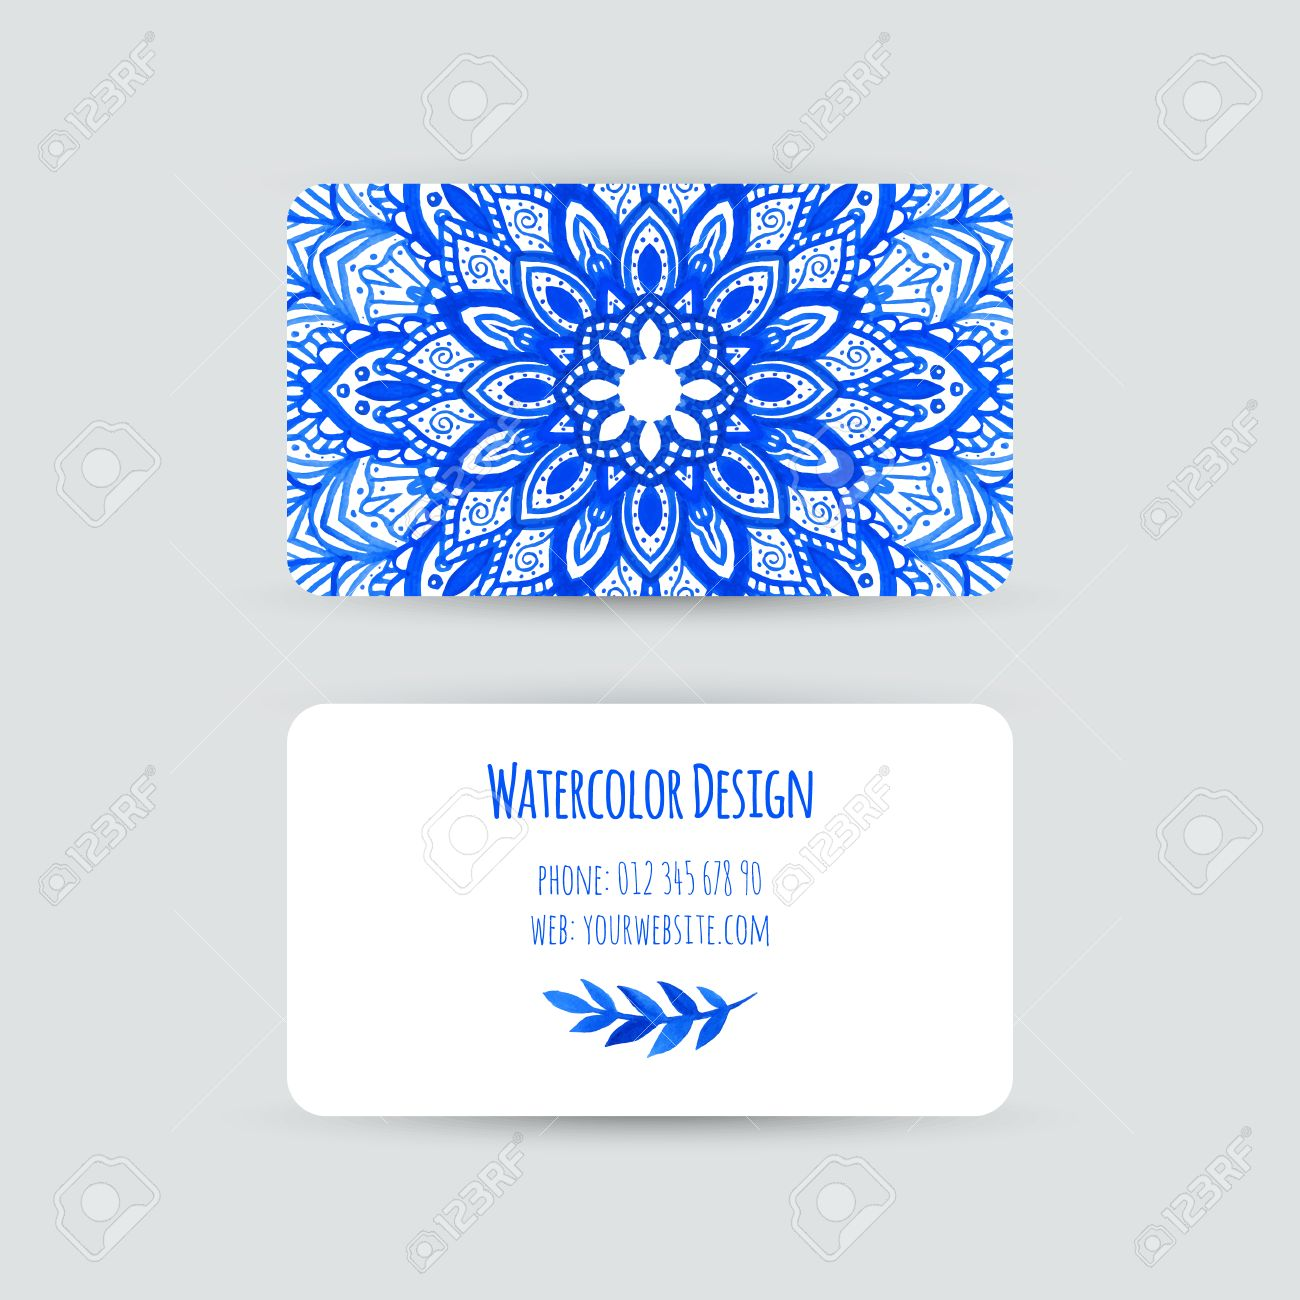 Business cards templates. Watercolor design. Cards with abstract..